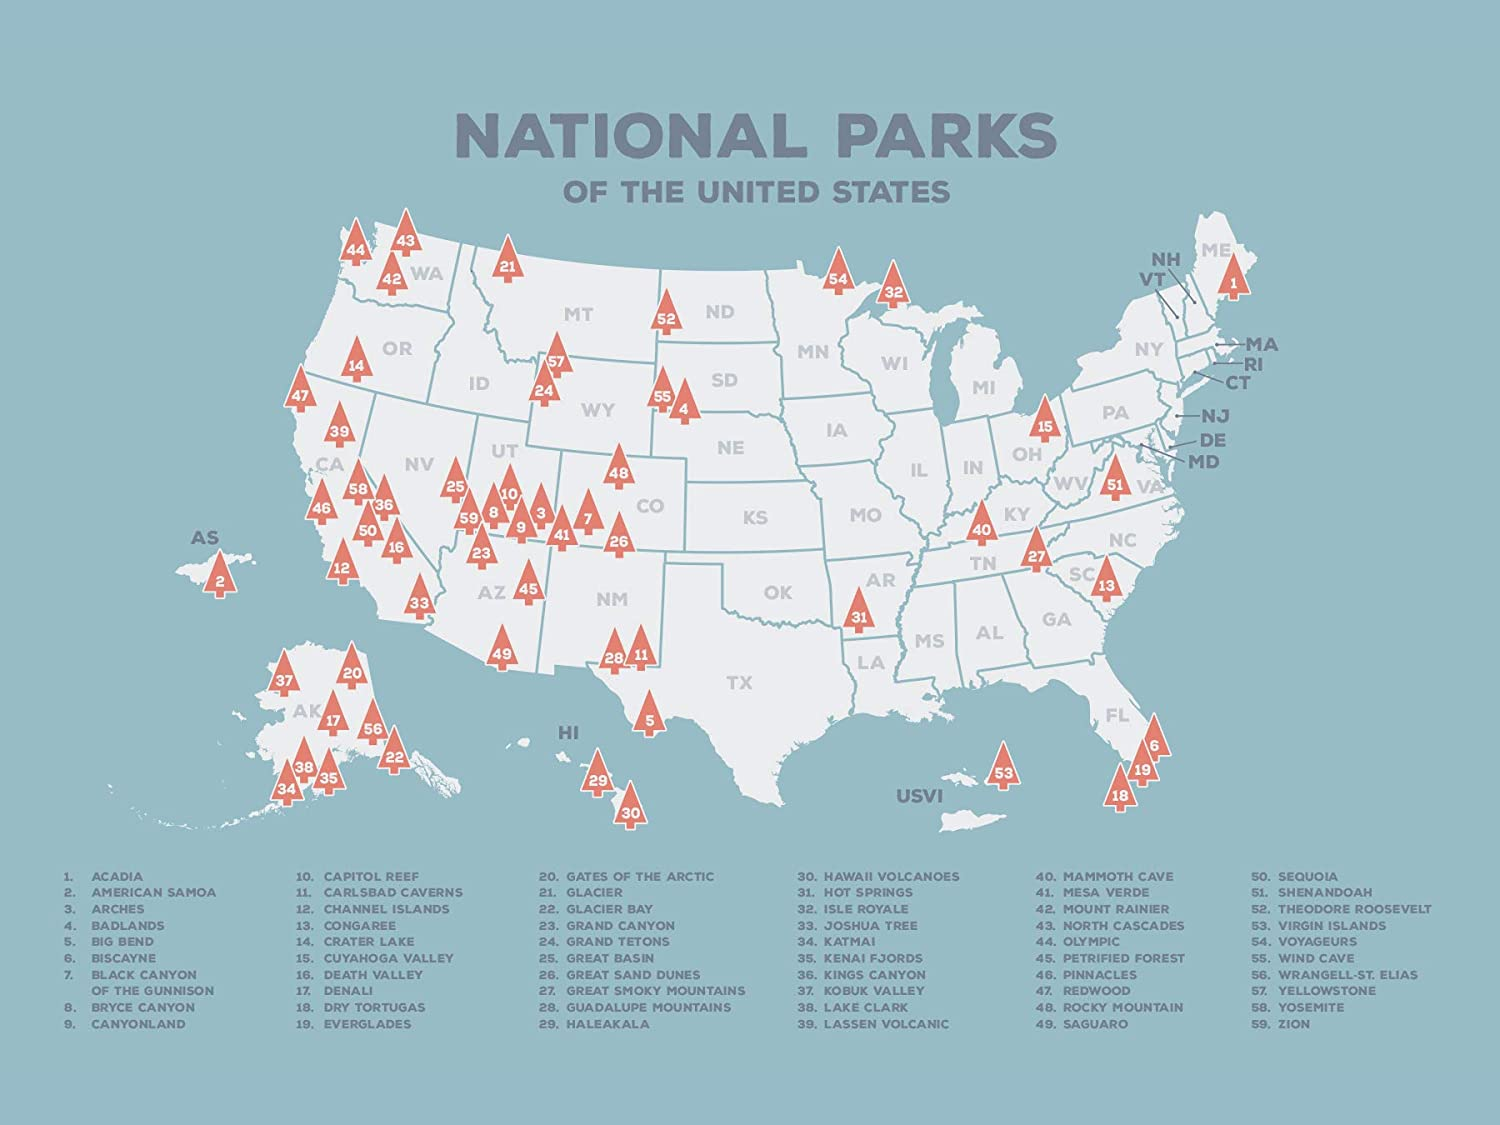 Us National Parks Wall Map Amazon.com: Kindred Sol Collective USA National Parks Wall Map